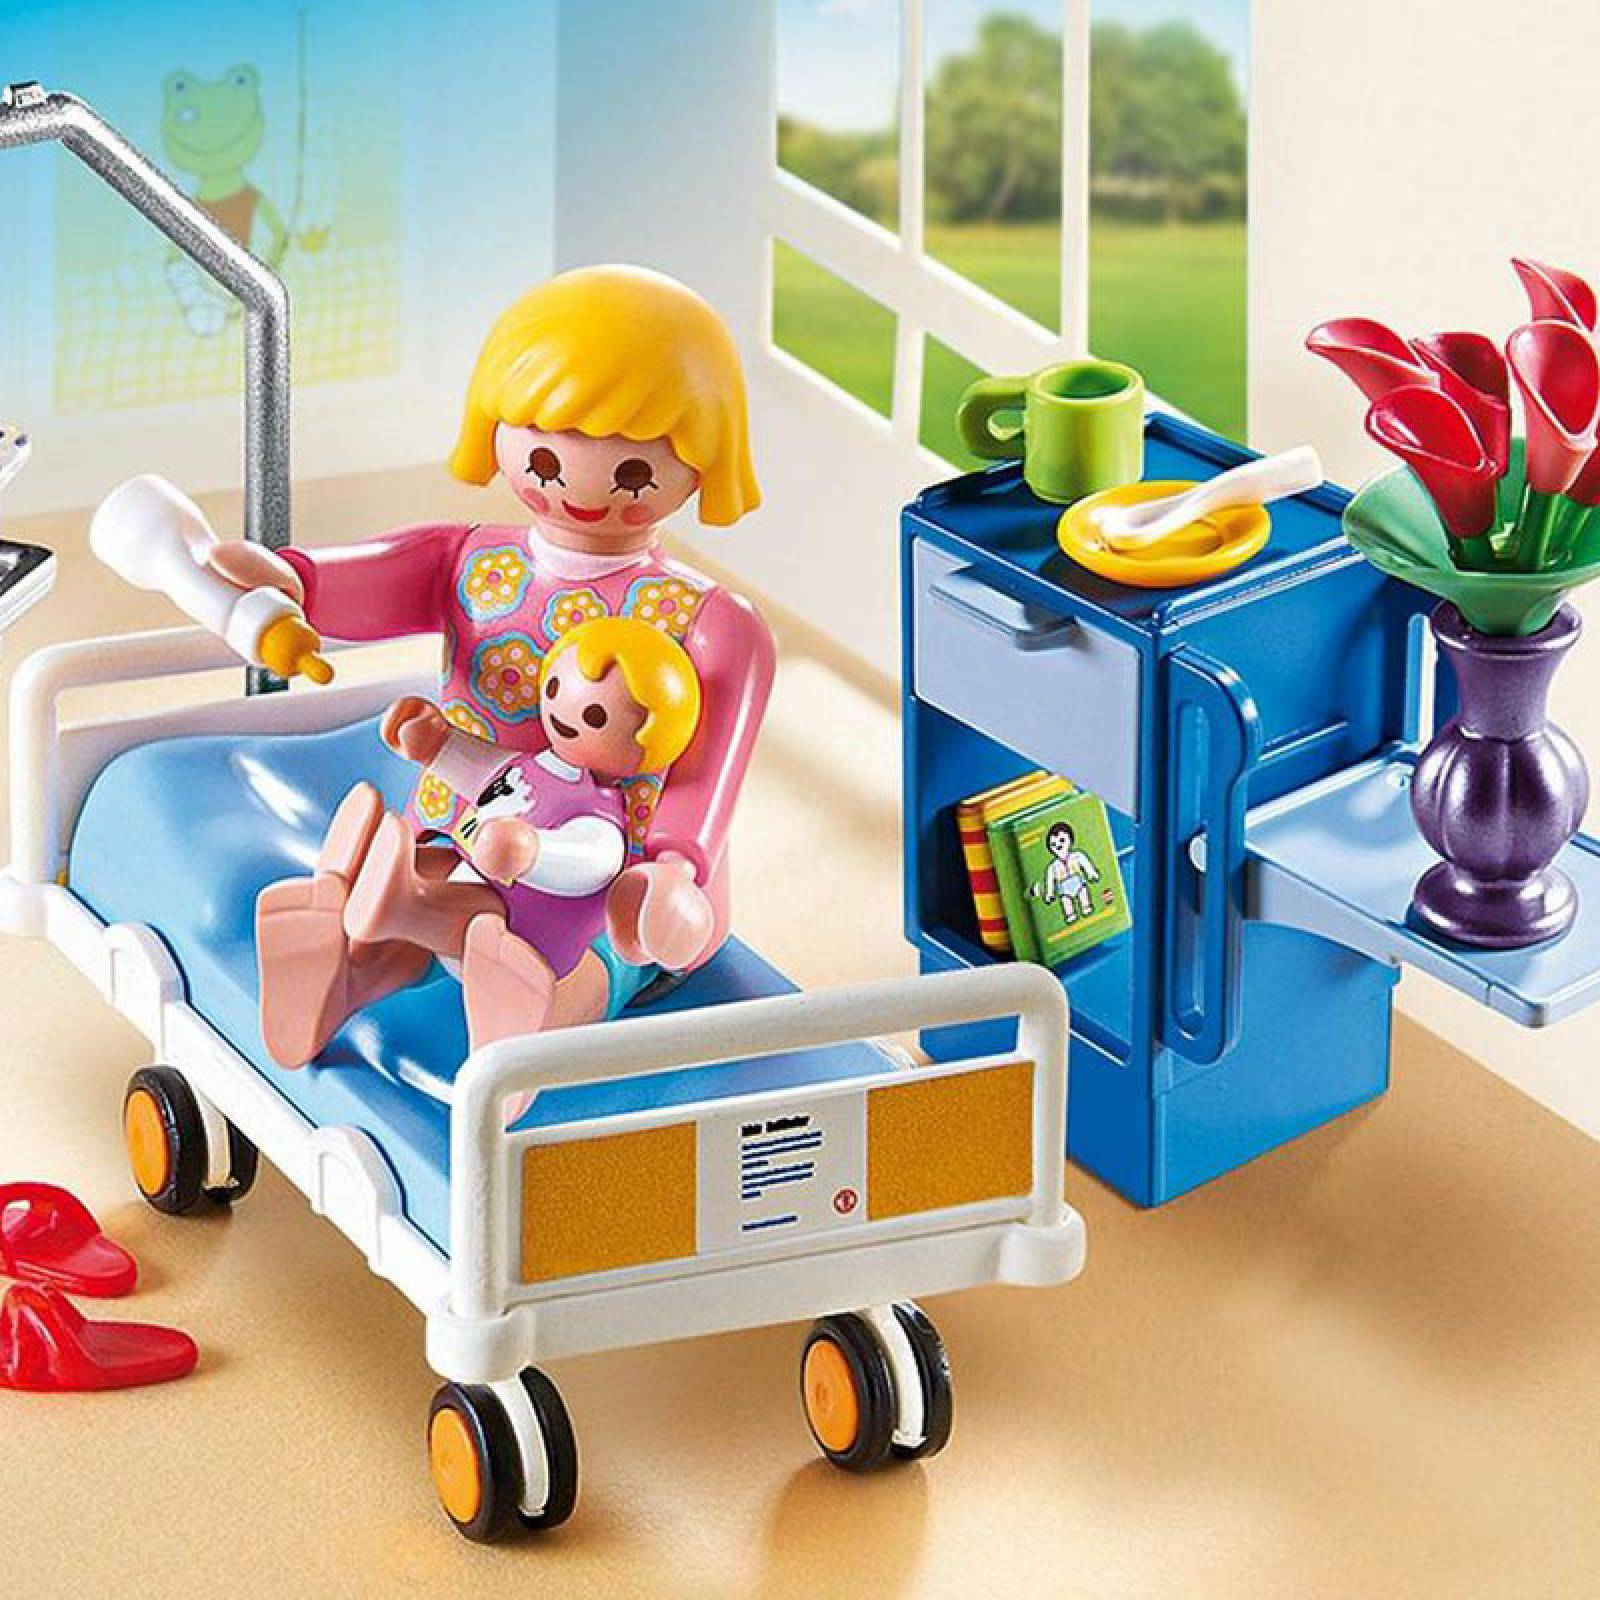 Maternity Room City Life Playmobil 6660 4-10yrs